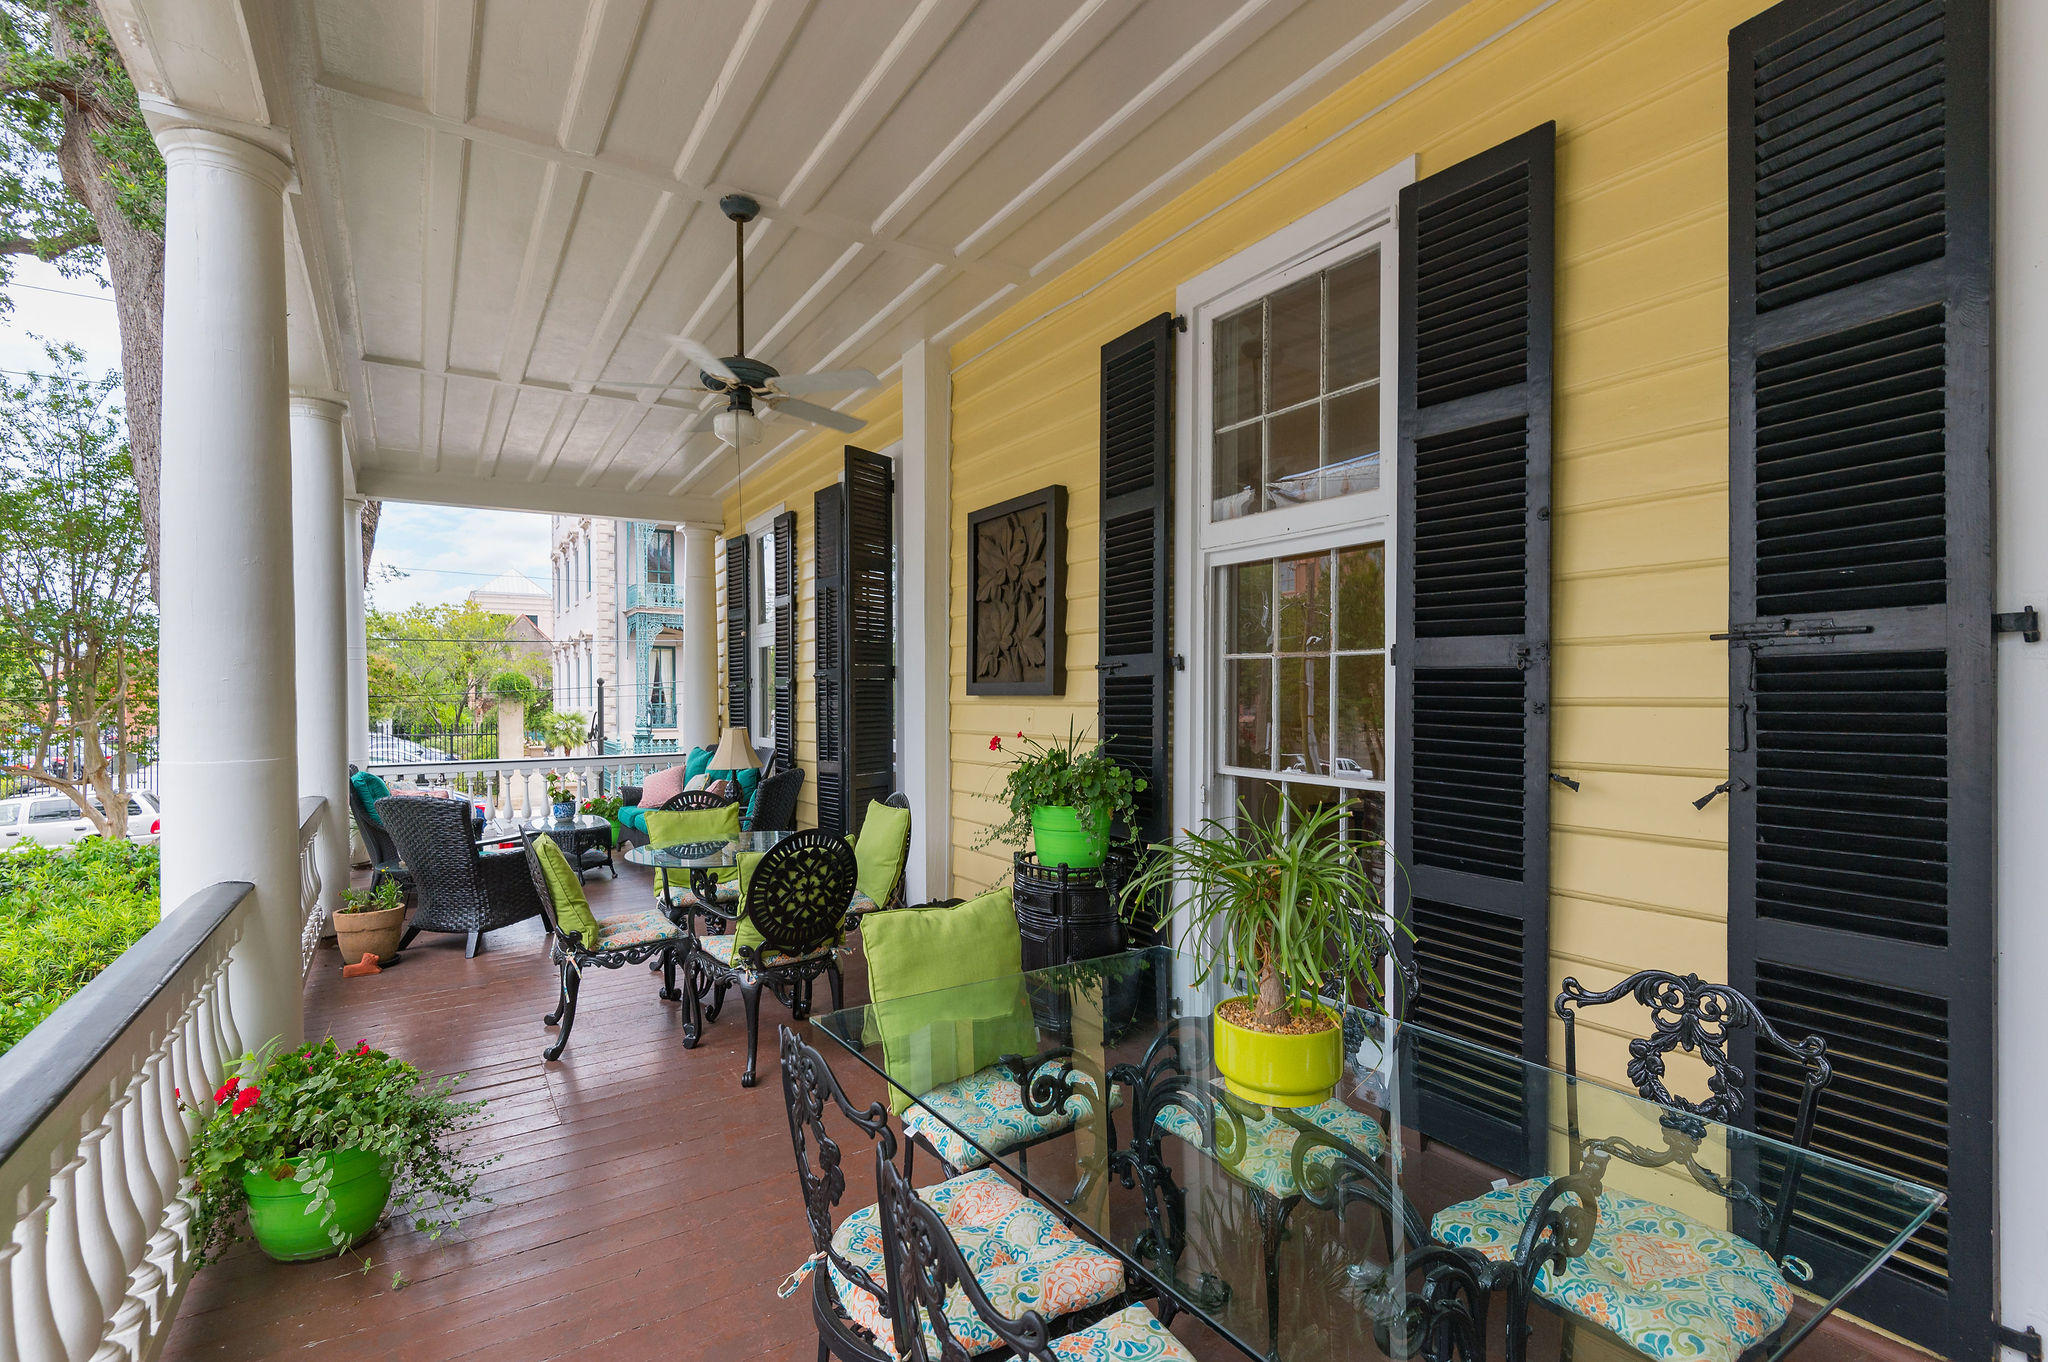 South of Broad Homes For Sale - 117 Broad, Charleston, SC - 19